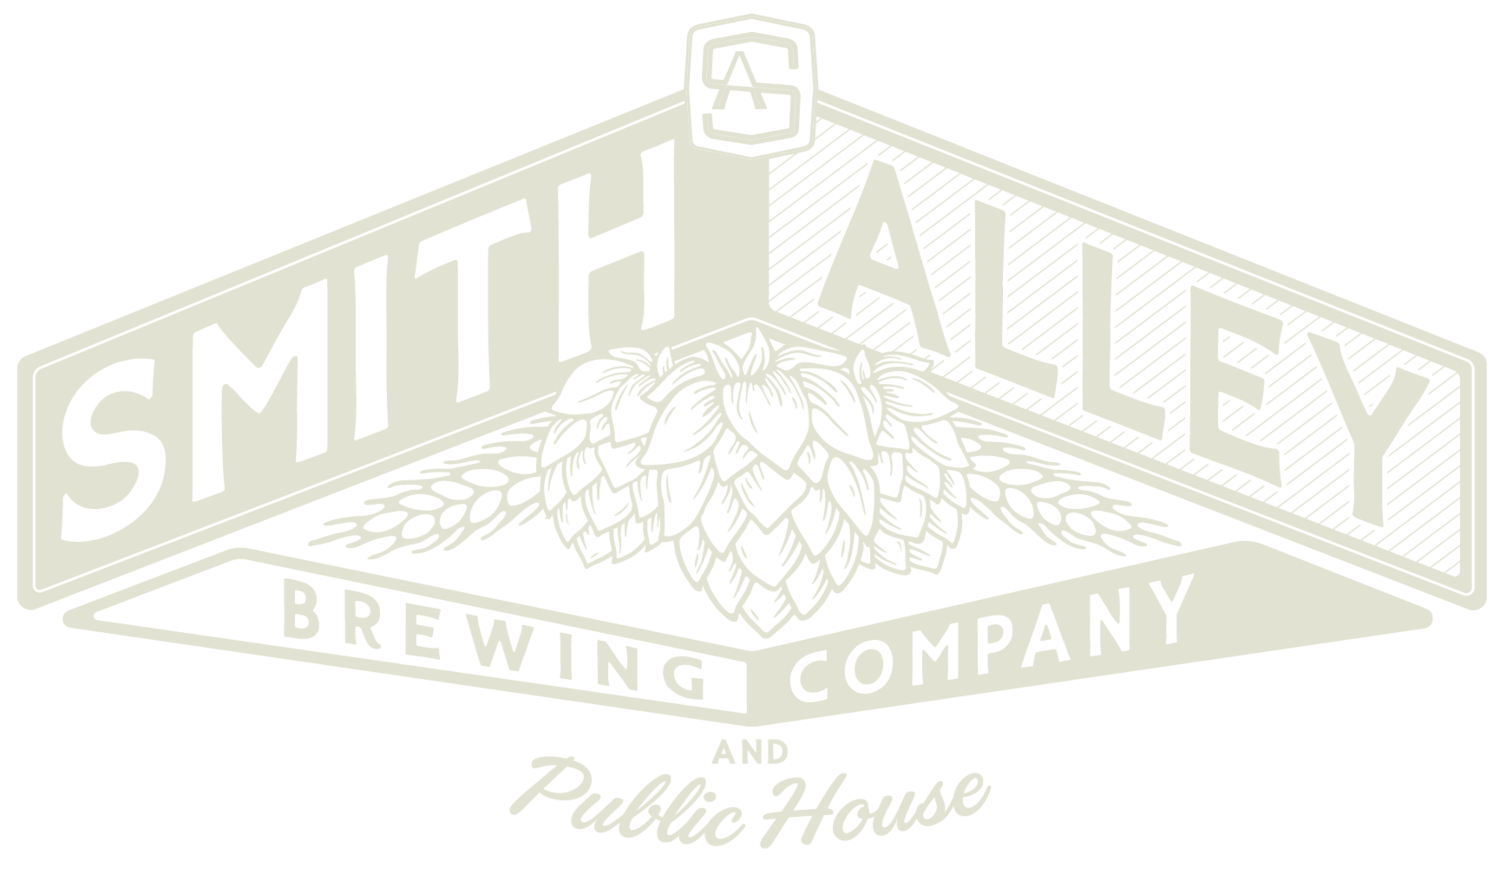 Smith Alley Brewing Company & Public House